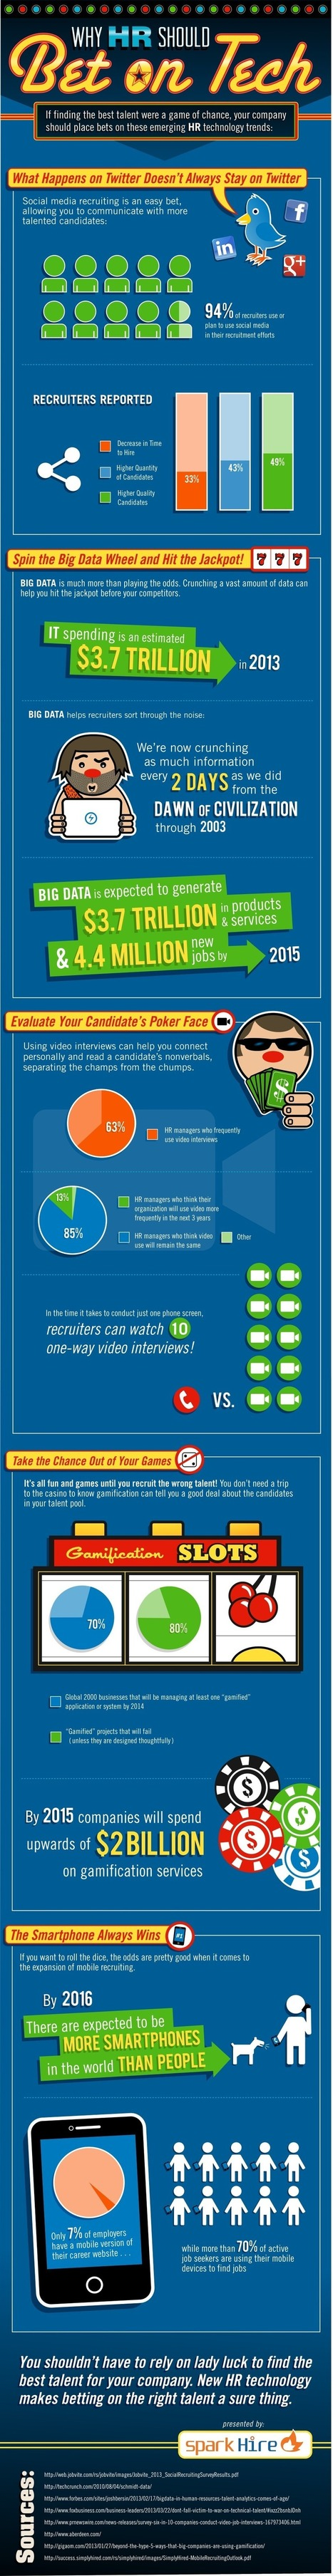 HR Technology Trends [INFOGRAPHIC] | The Digital Revolution | Scoop.it